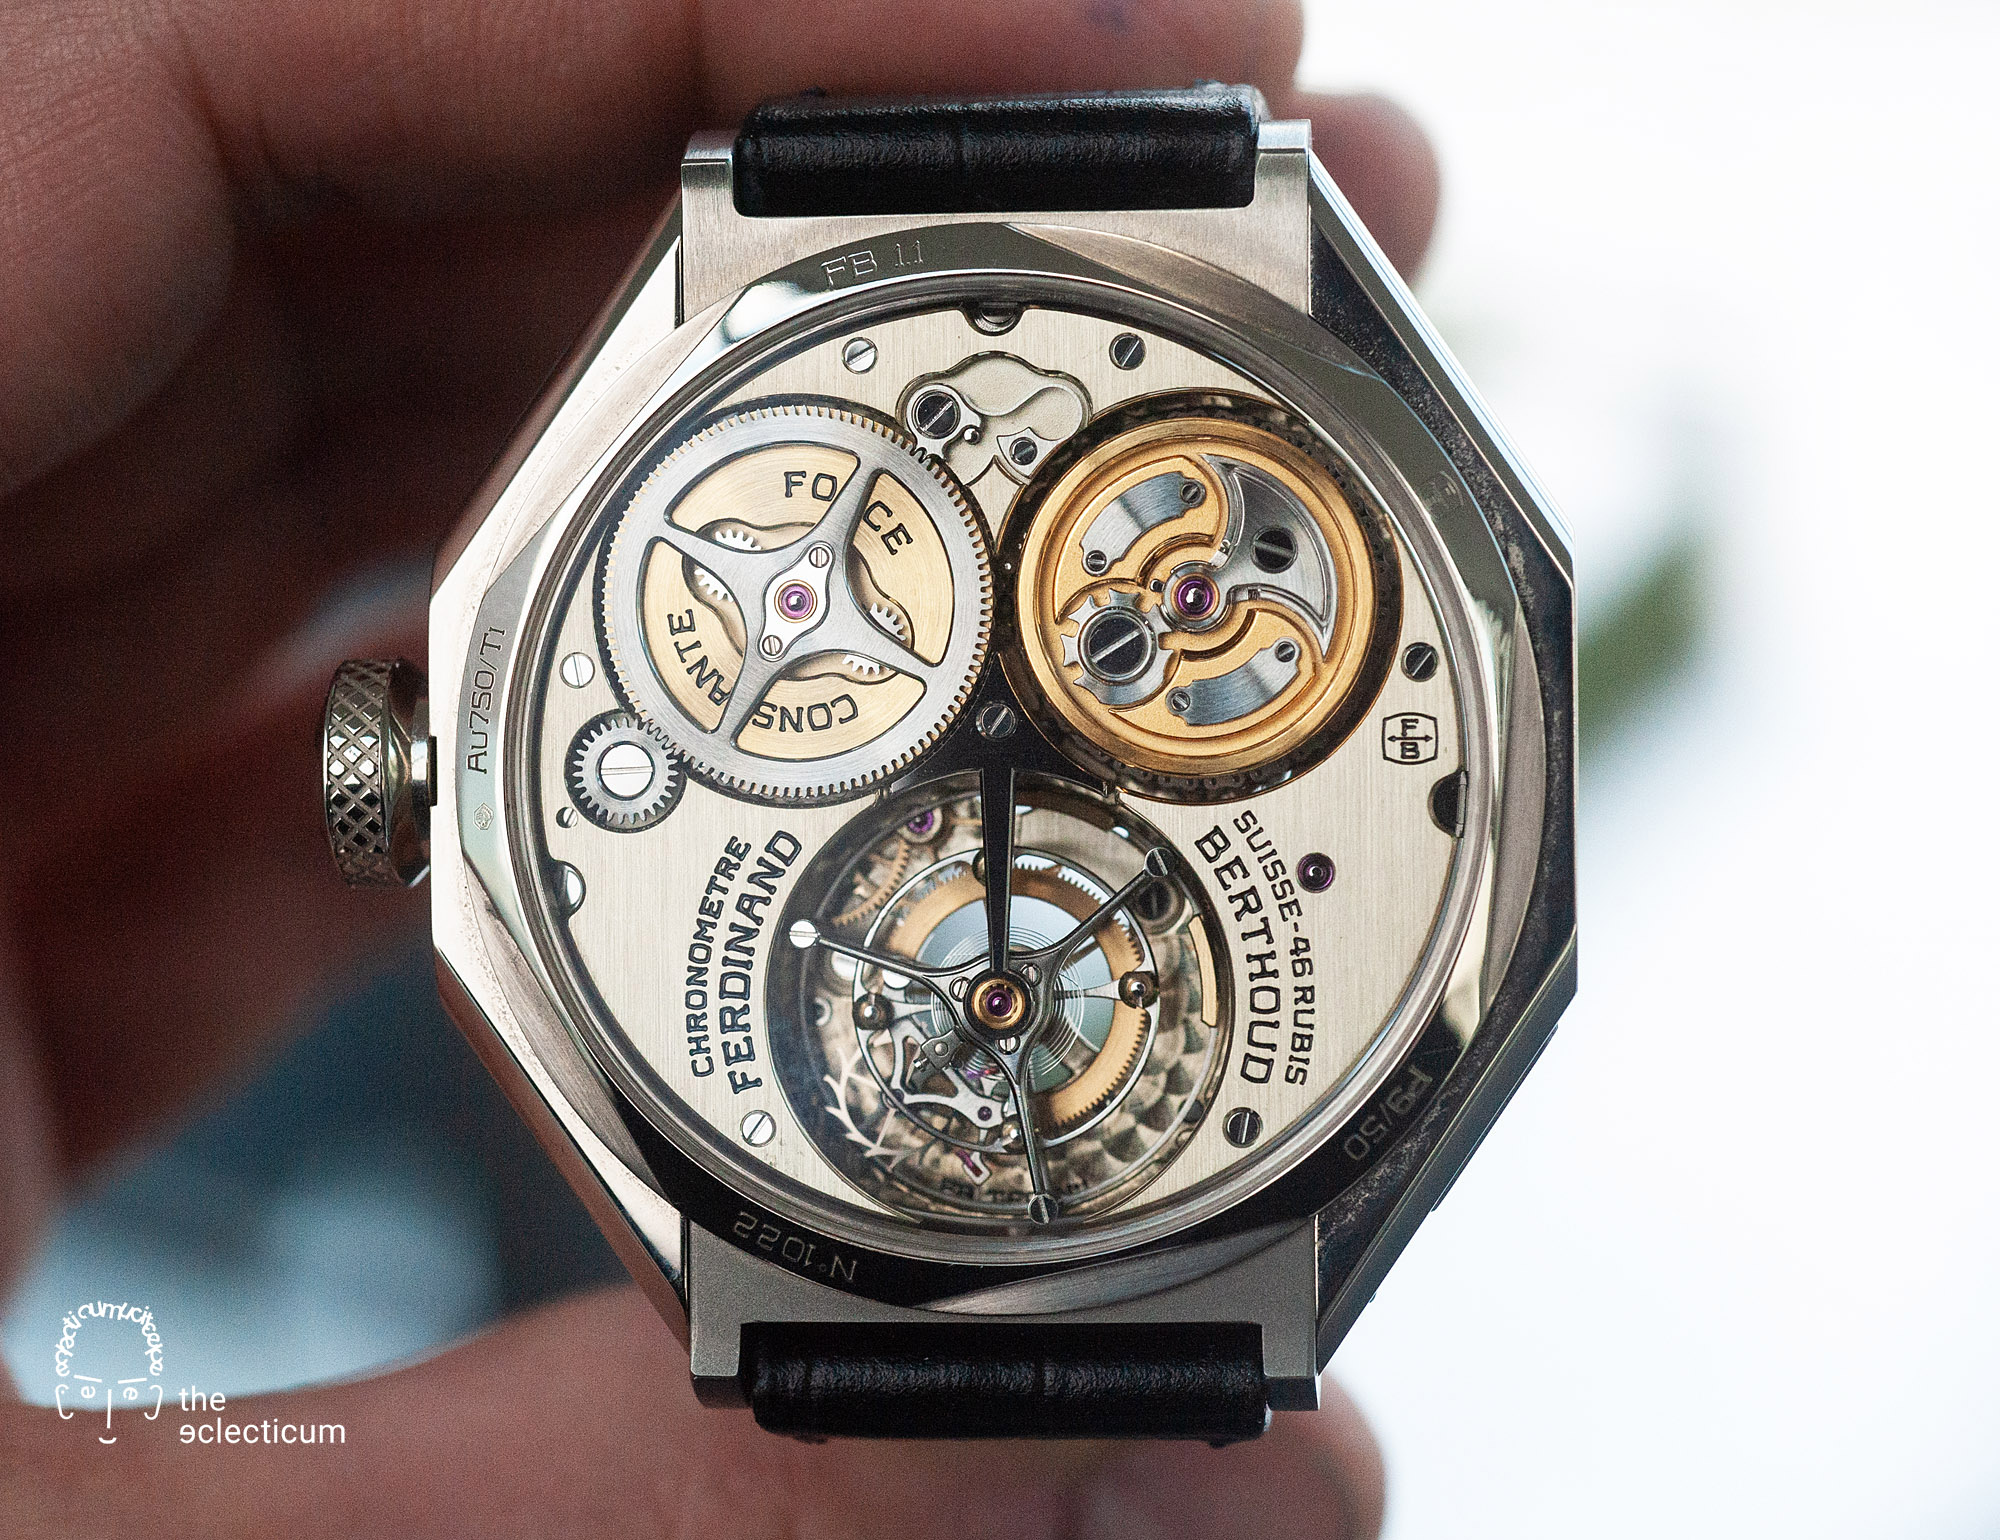 Ferdinand Berthoud Chronometry FB 1 chronometer tourbillon movement